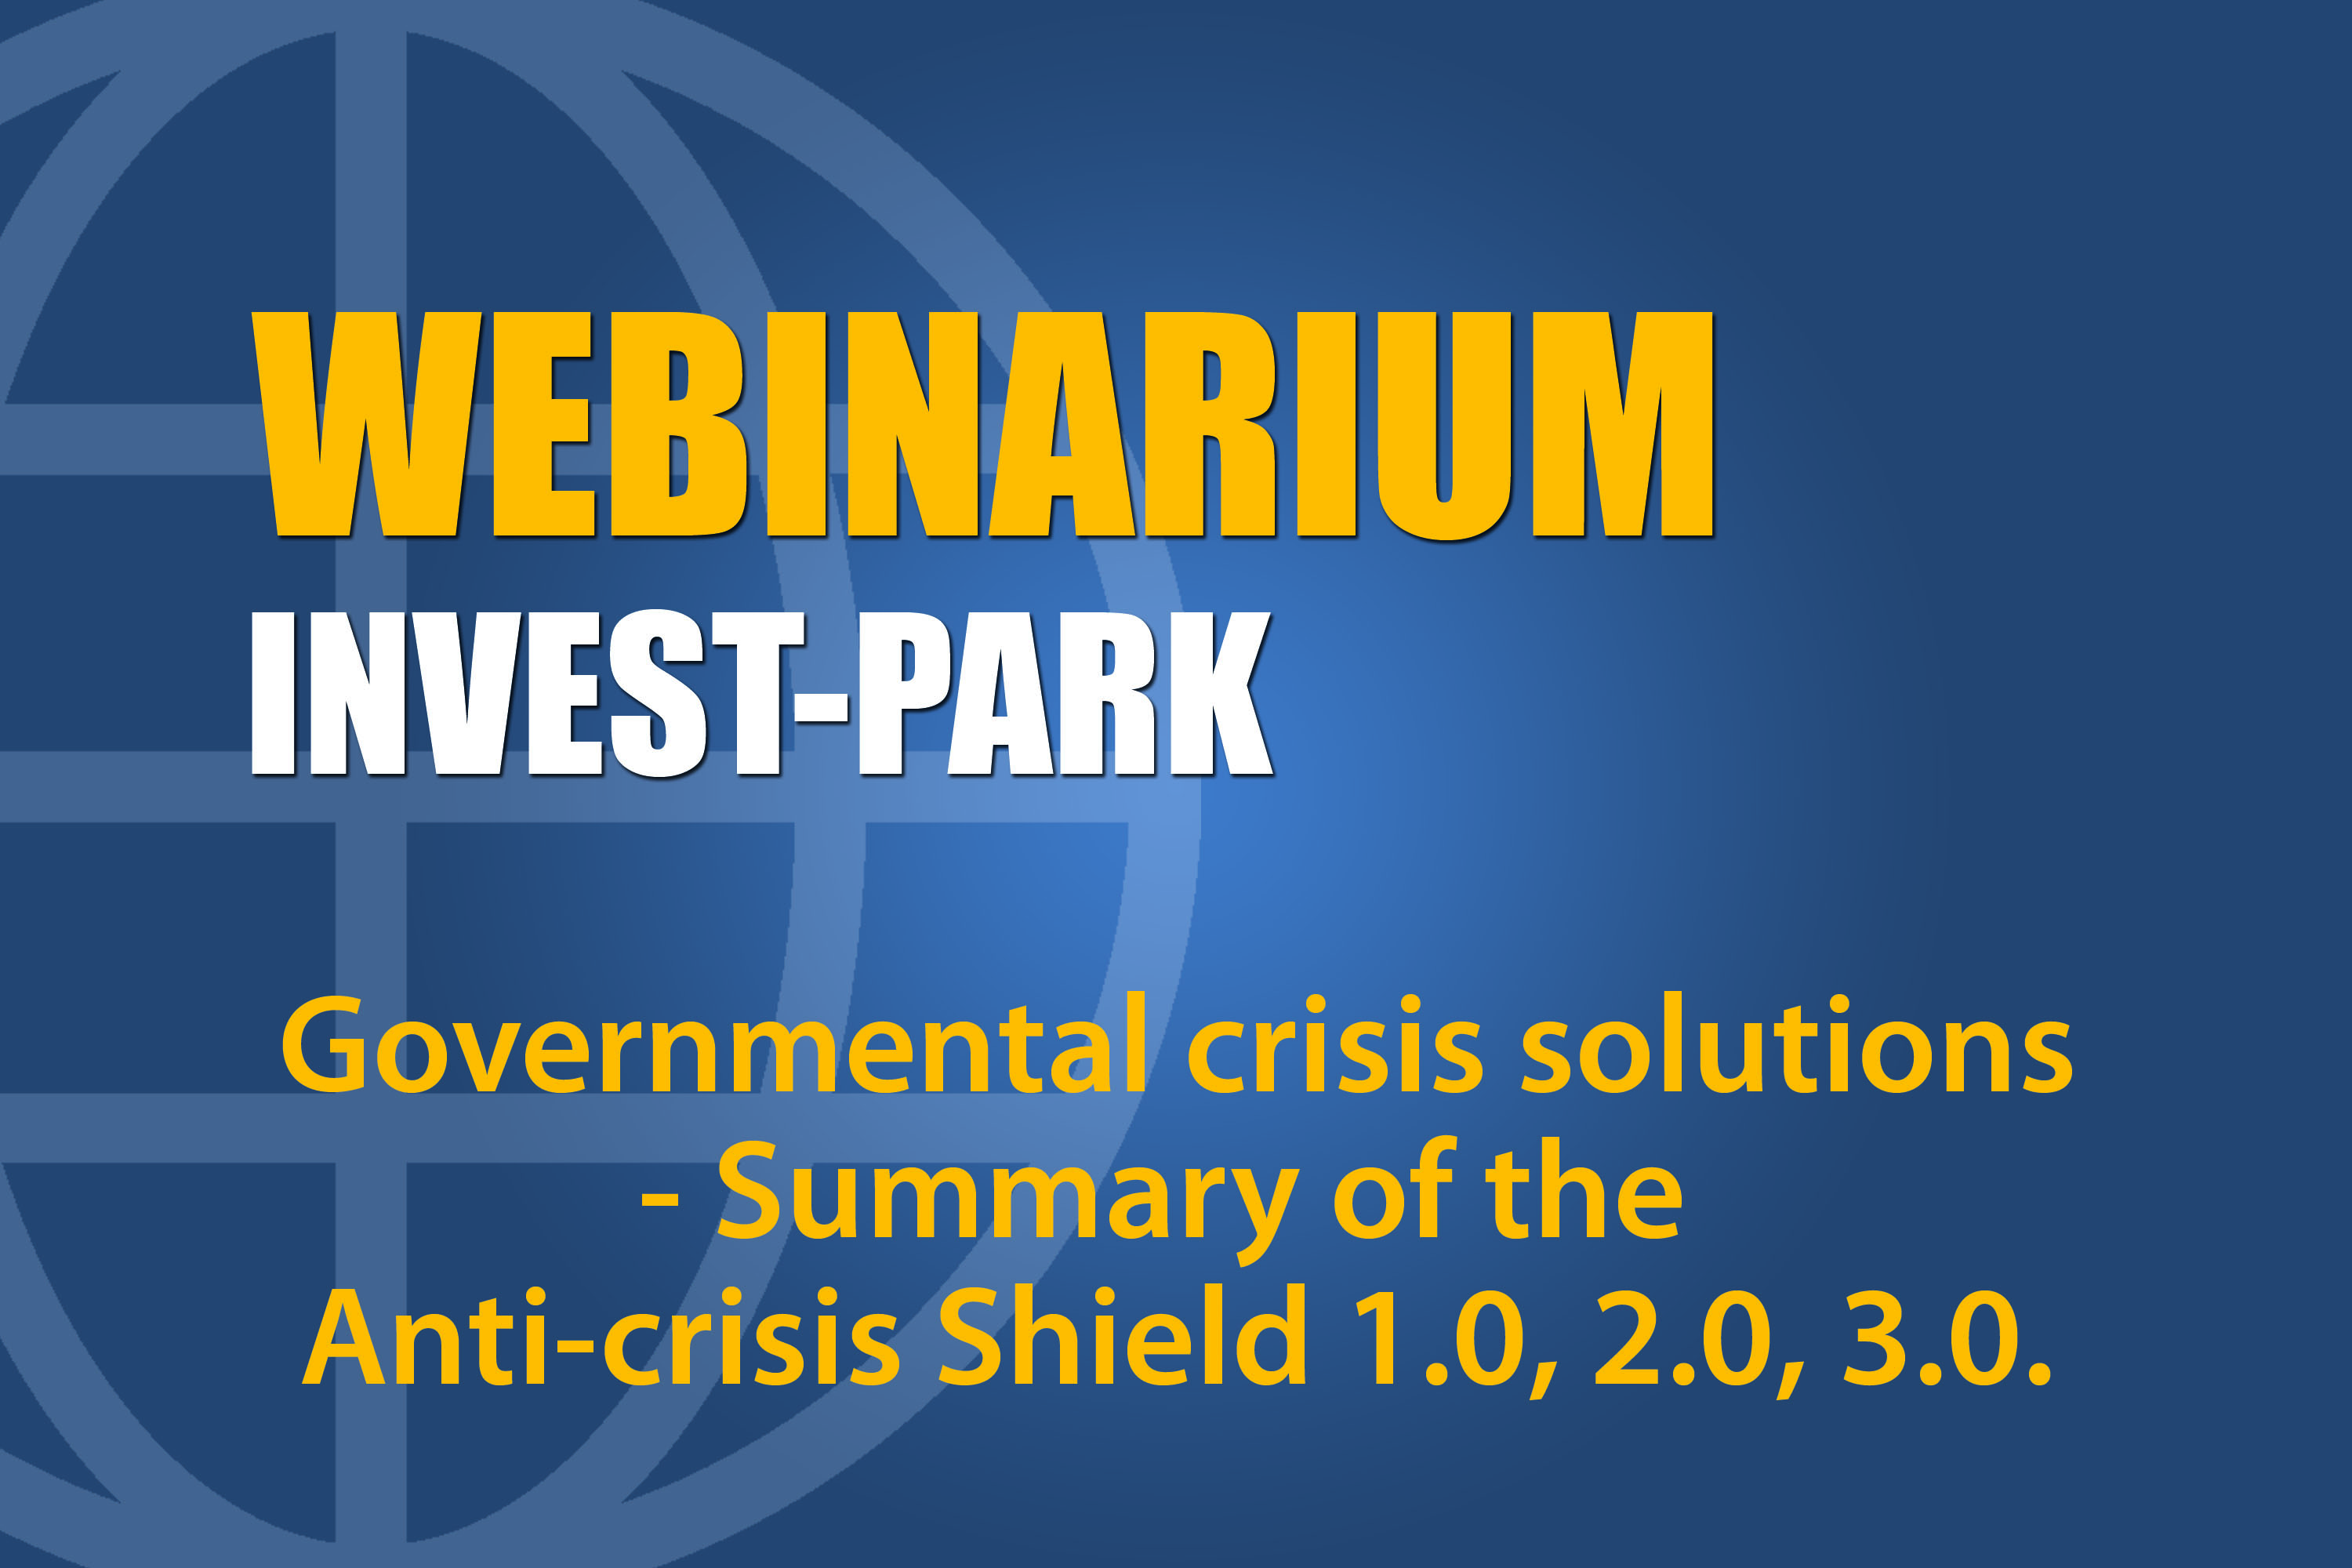 Governmental crisis solutions - Summary of the Anti-crisis Shield 1.0, 2.0, 3.0.